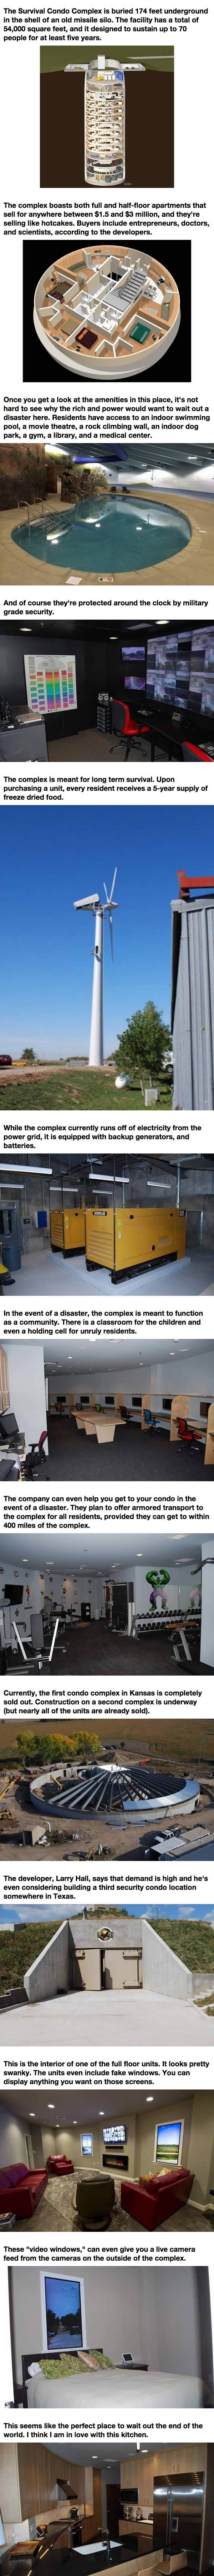 Disaster-proof condos